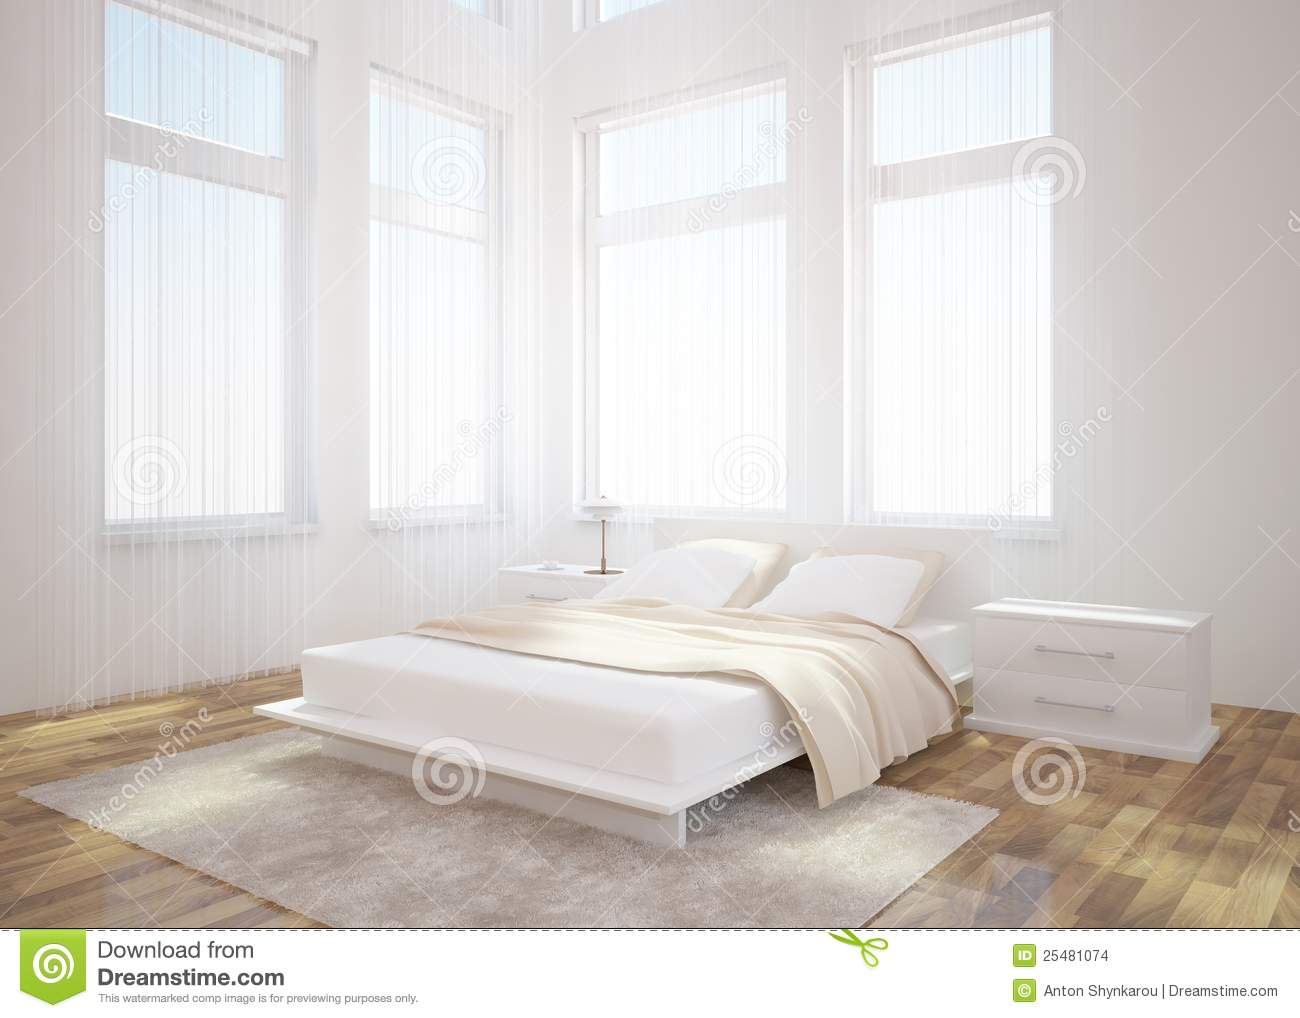 White bedroom interior design stock images image 25481074 - Bedrooms images ...